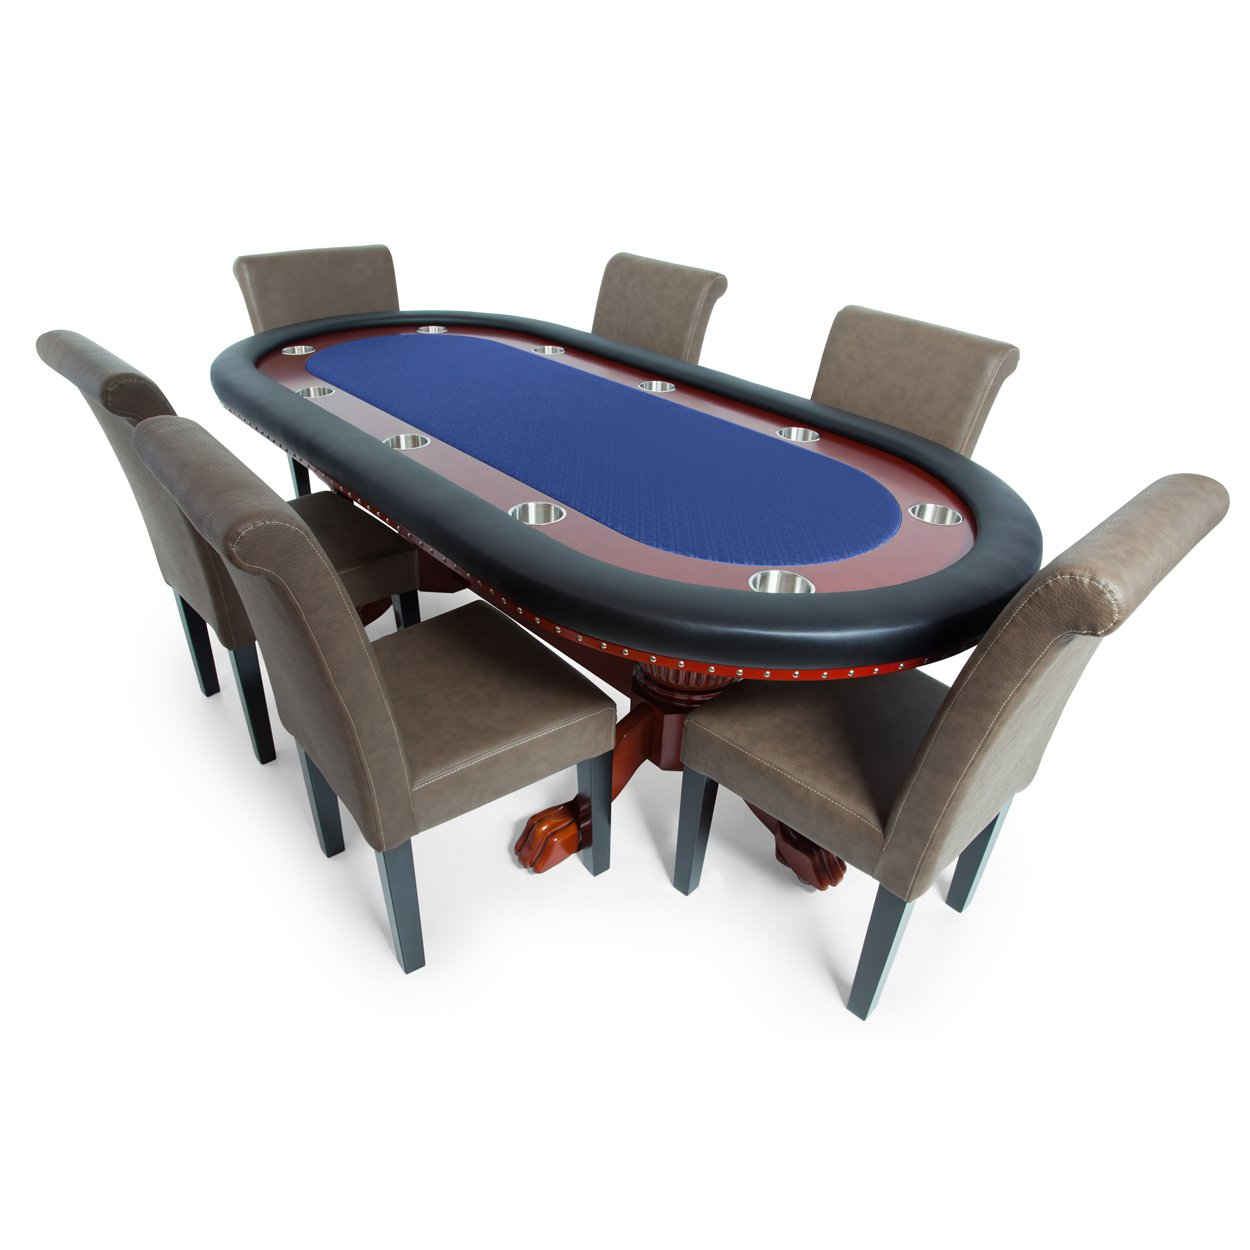 BBO Poker Rockwell Poker Table for 10 Players with Speed Cloth Playing Surface 93x45-Inch Oval Includes Matching Dining Top with 6 Dining Chairs